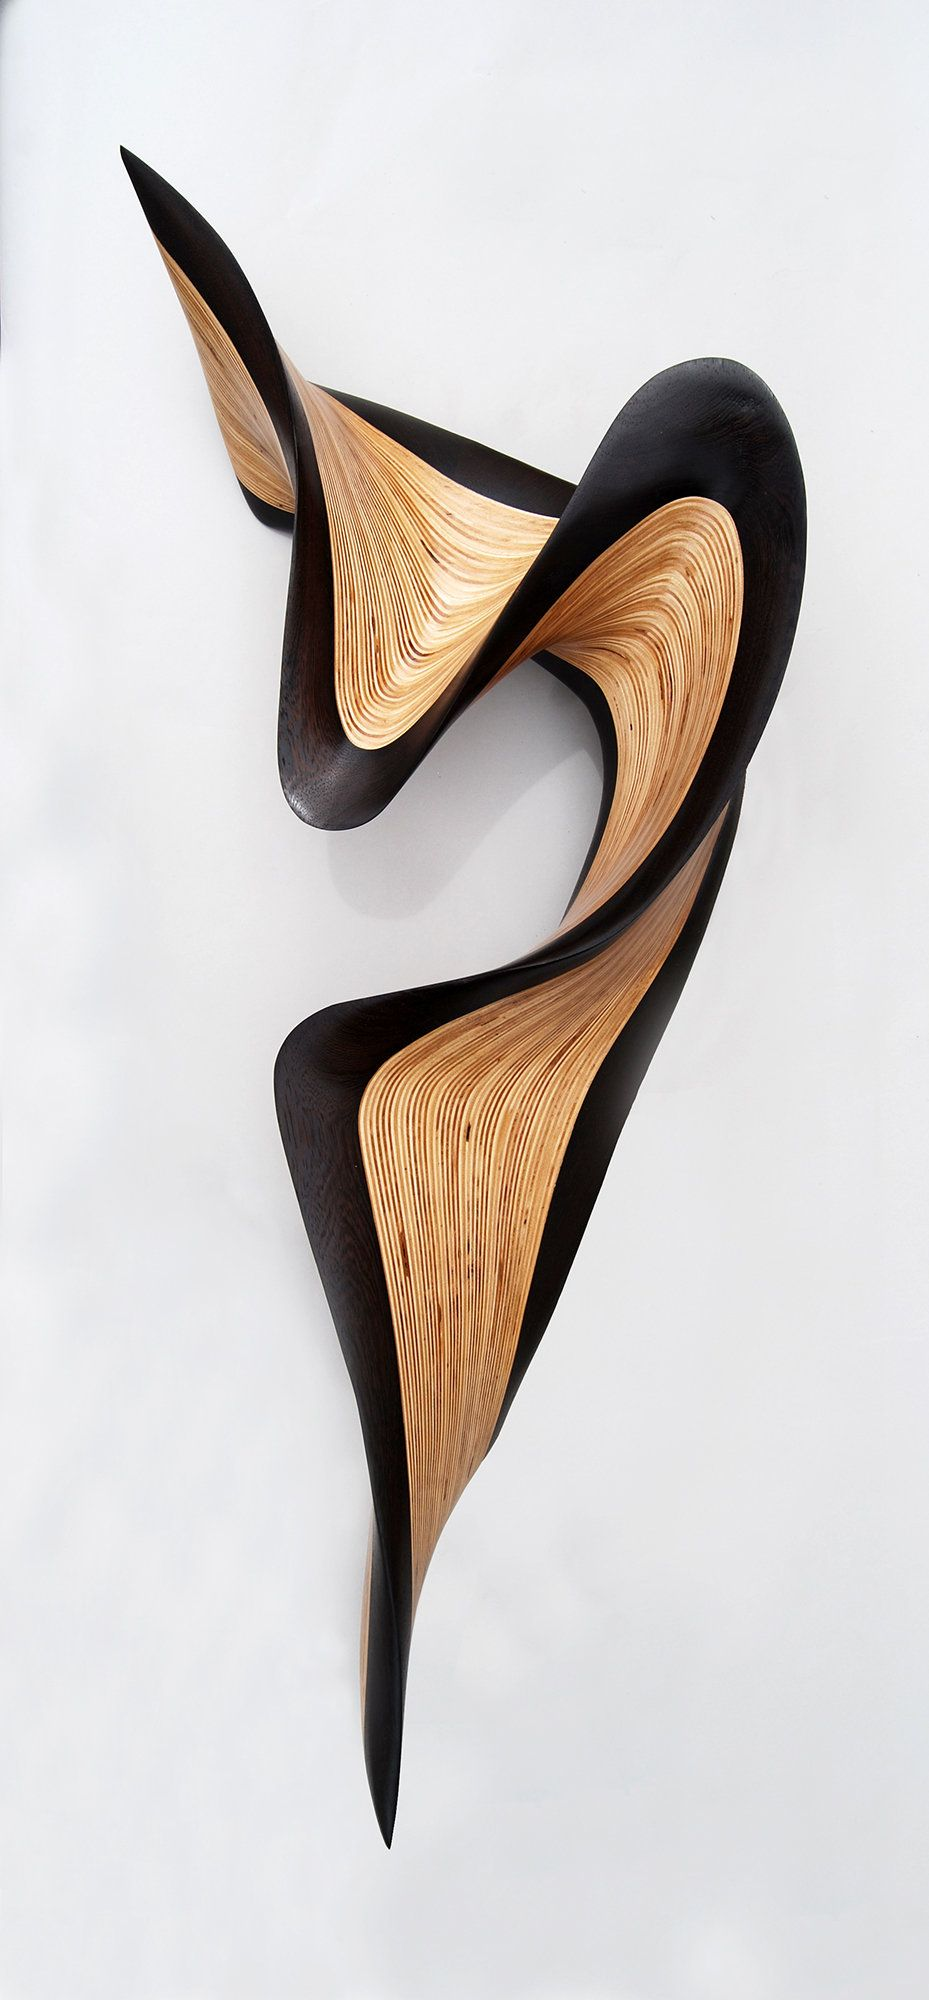 wenge jive by kerry vesper wood wall sculpture wood. Black Bedroom Furniture Sets. Home Design Ideas